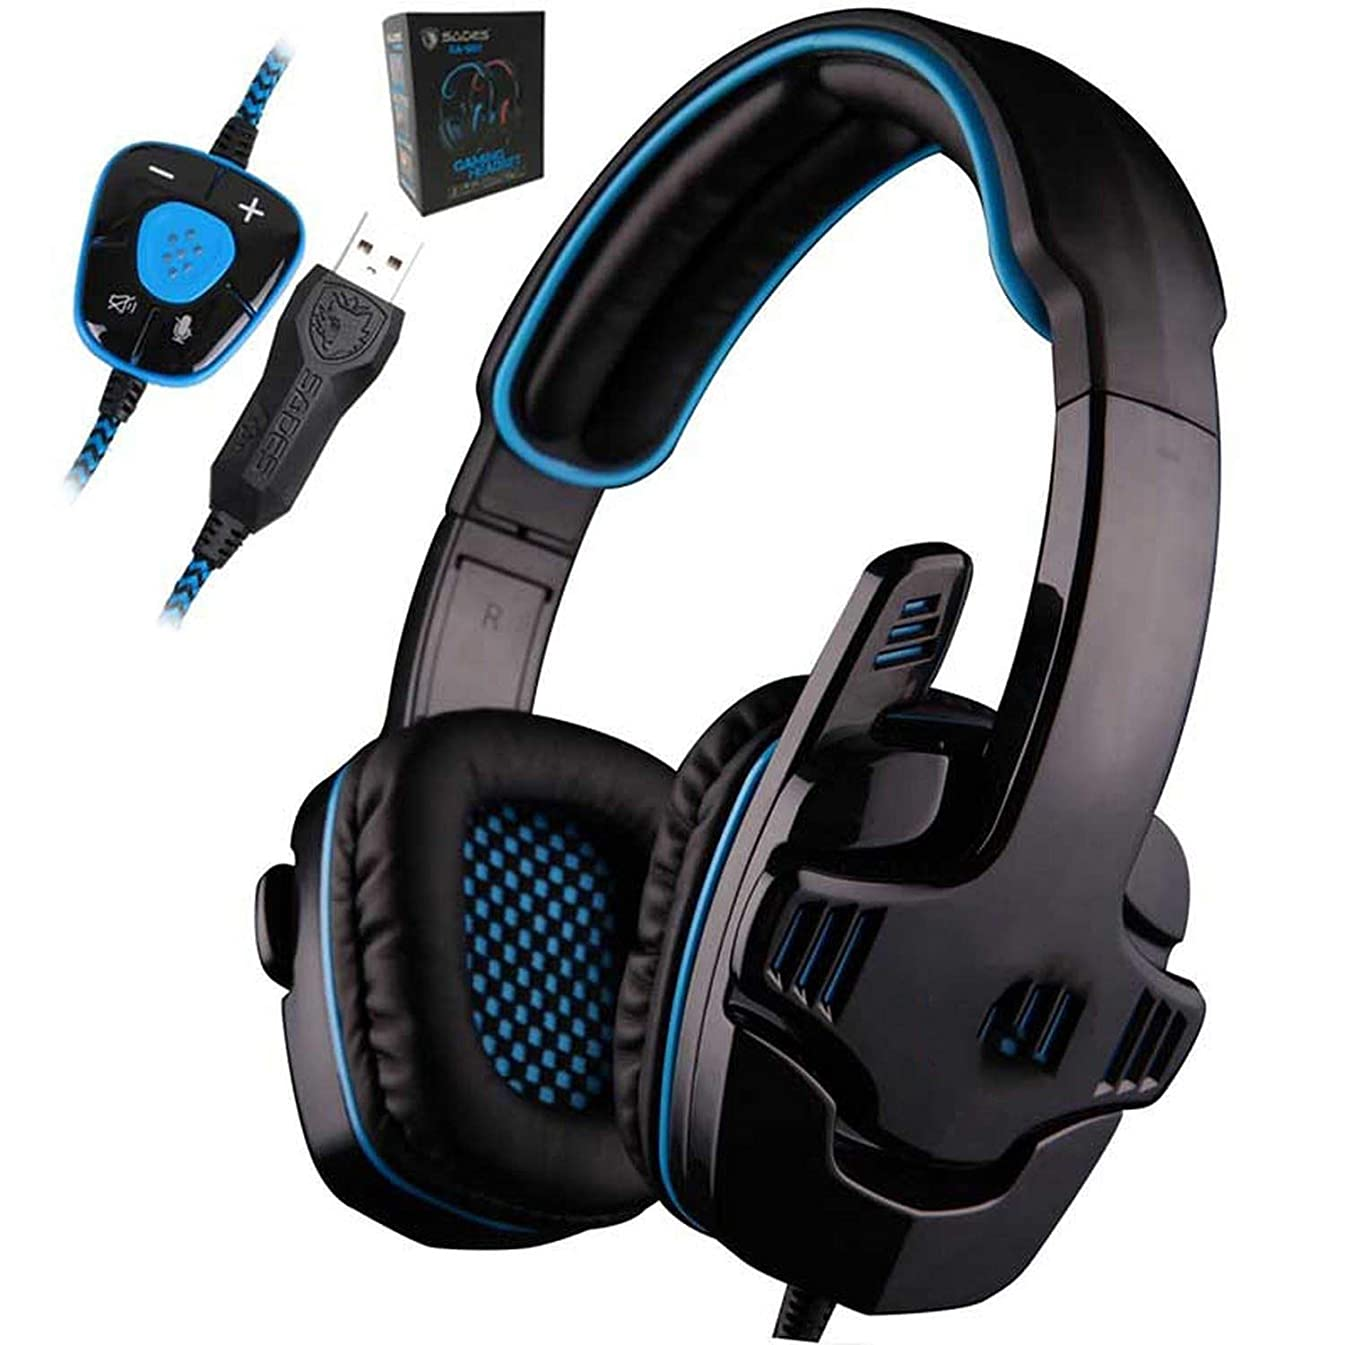 KCHWE Tshirt Gaming Headset 7.1 Surround USB Headphone Microphone Noise Cancelling Mic Computer Gamer,Blue sexc Tops